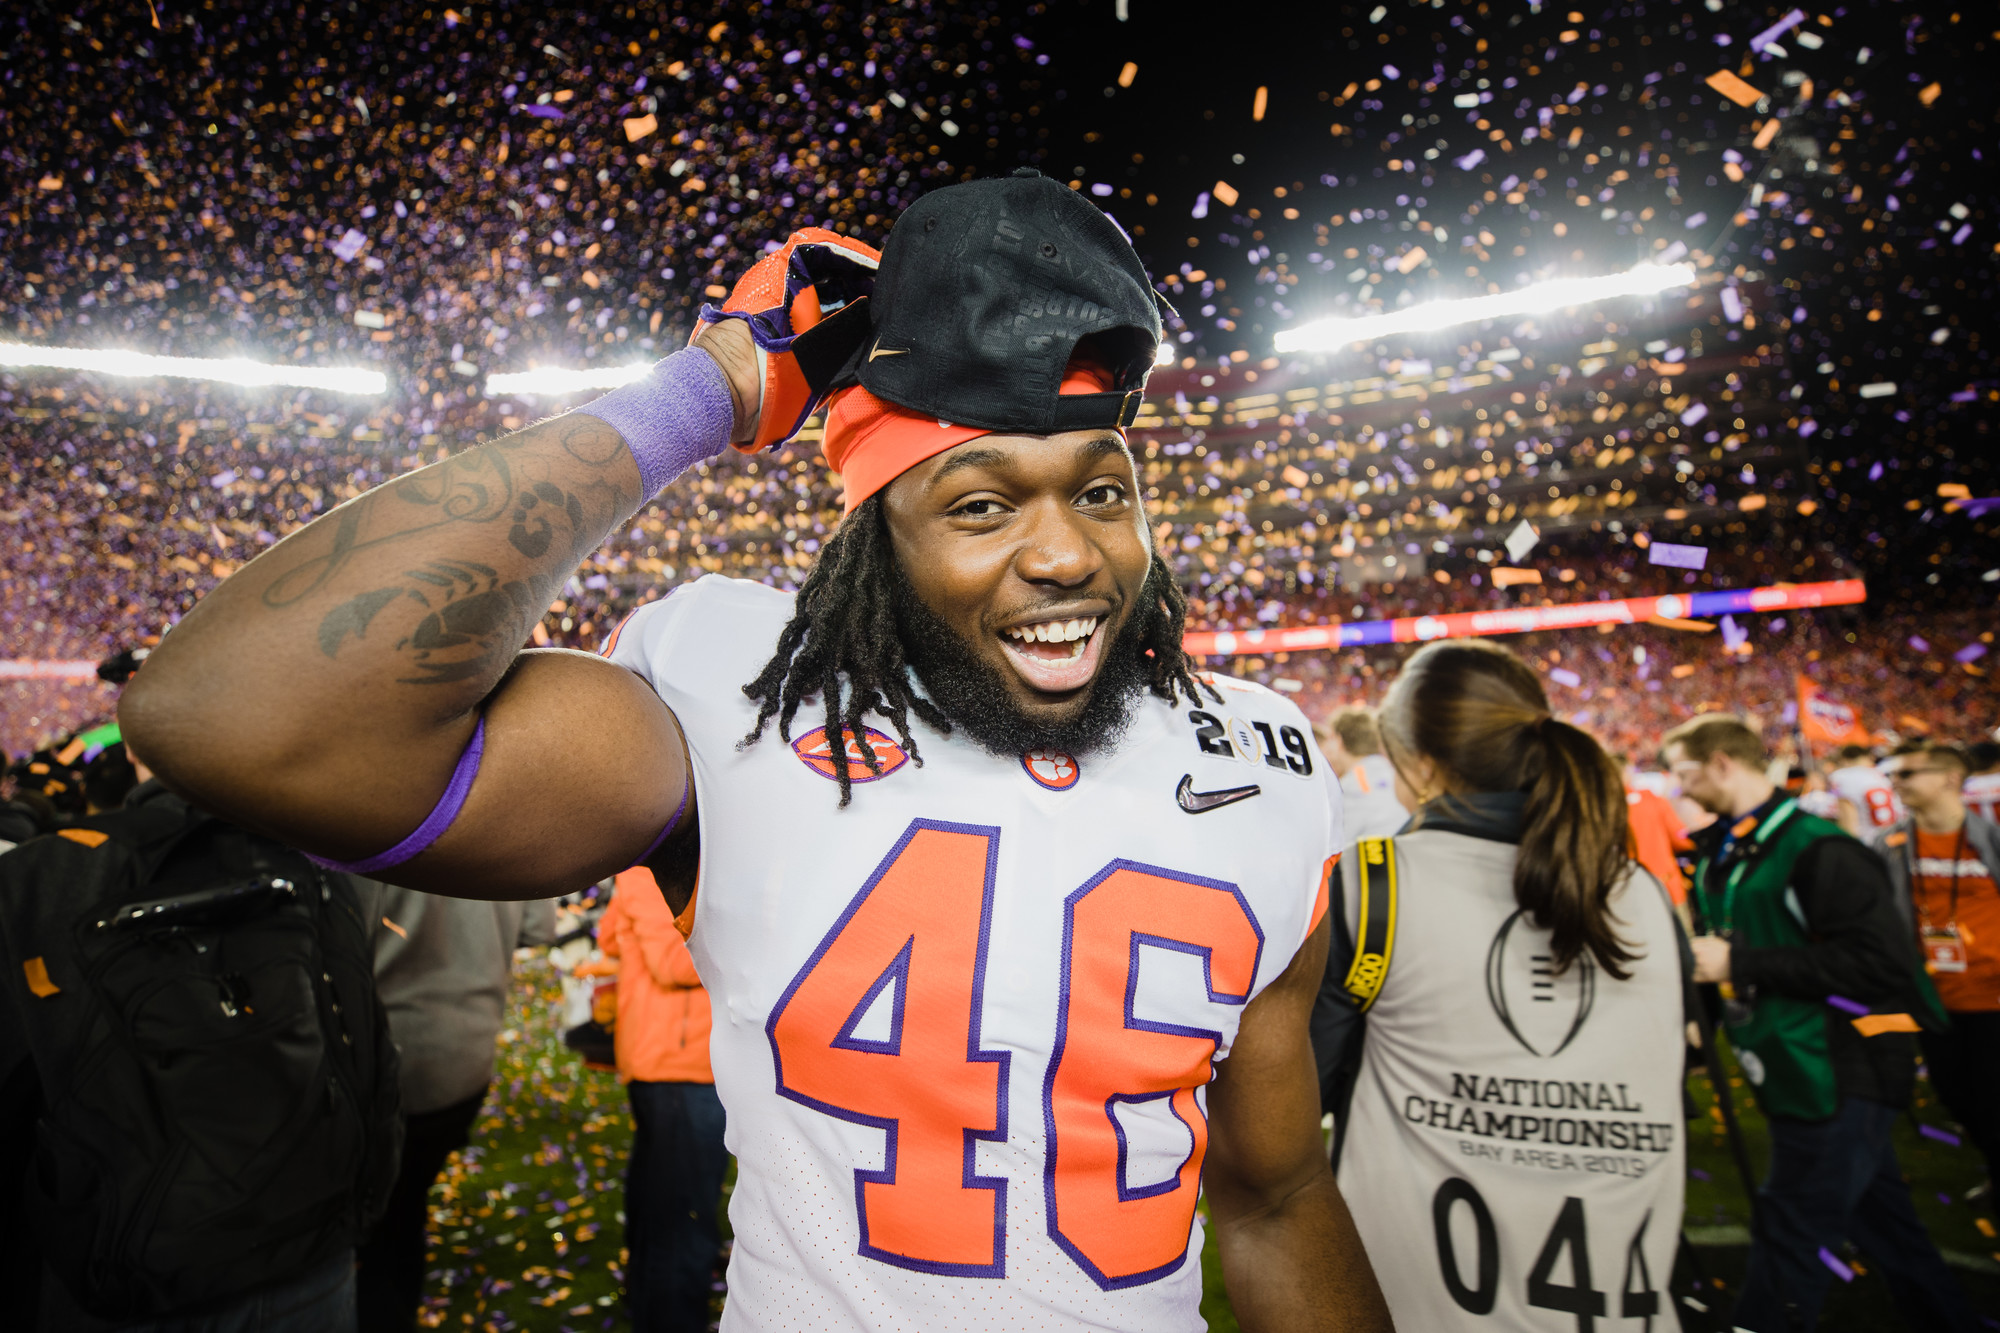 Clemson linebacker Sean Boyd celebrates at Levi's Stadium in Santa Clara, California, on Monday, Jan. 7 after routing Alabama 44-16 to win the 2019 CFP National Championship.